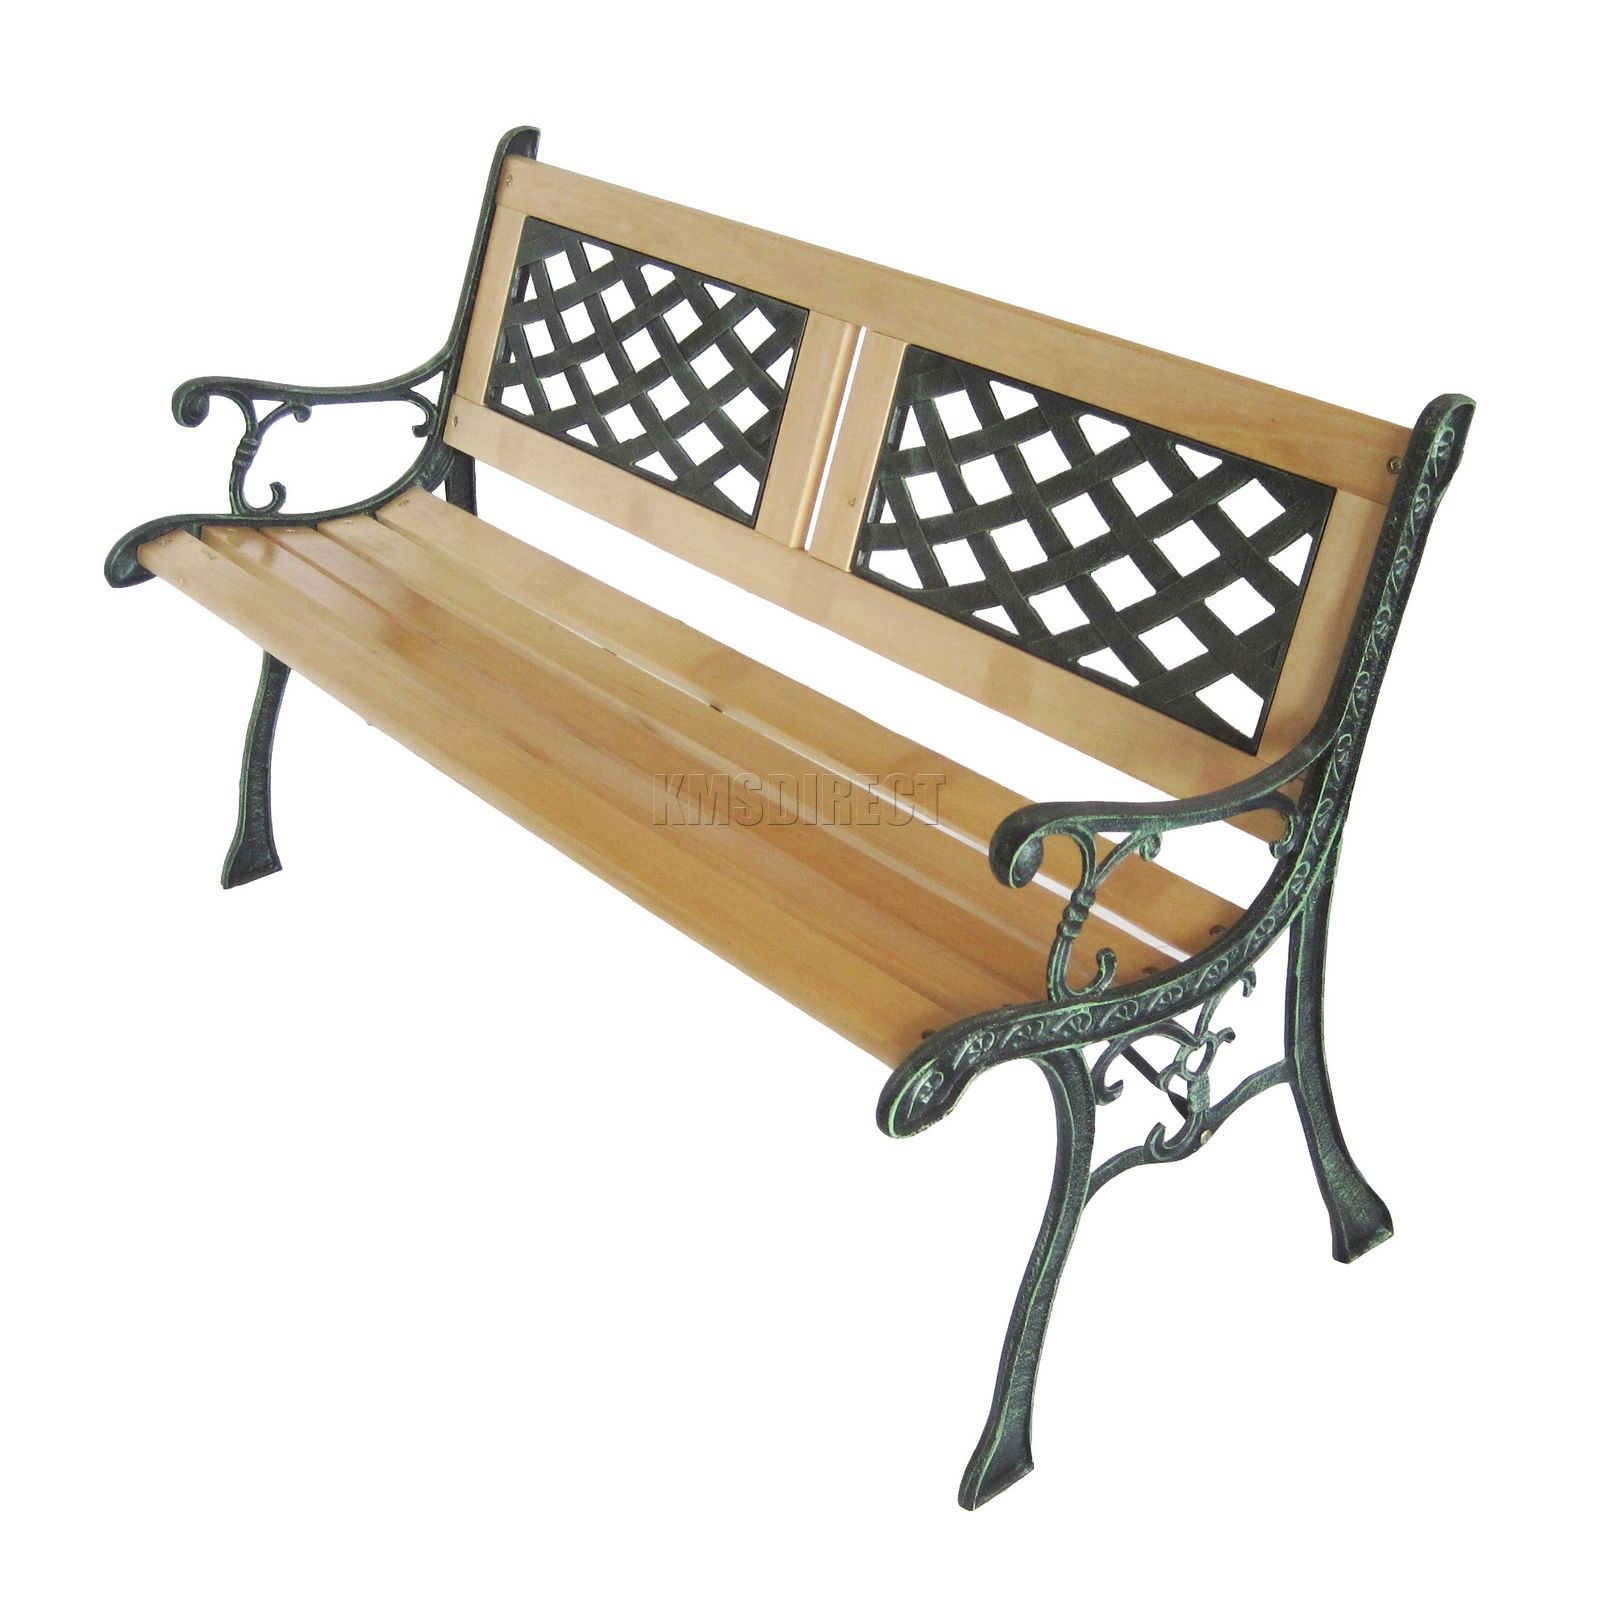 Wooden Park Benches Front 3 Seater Outdoor Wooden Garden Bench Lattice Slat With